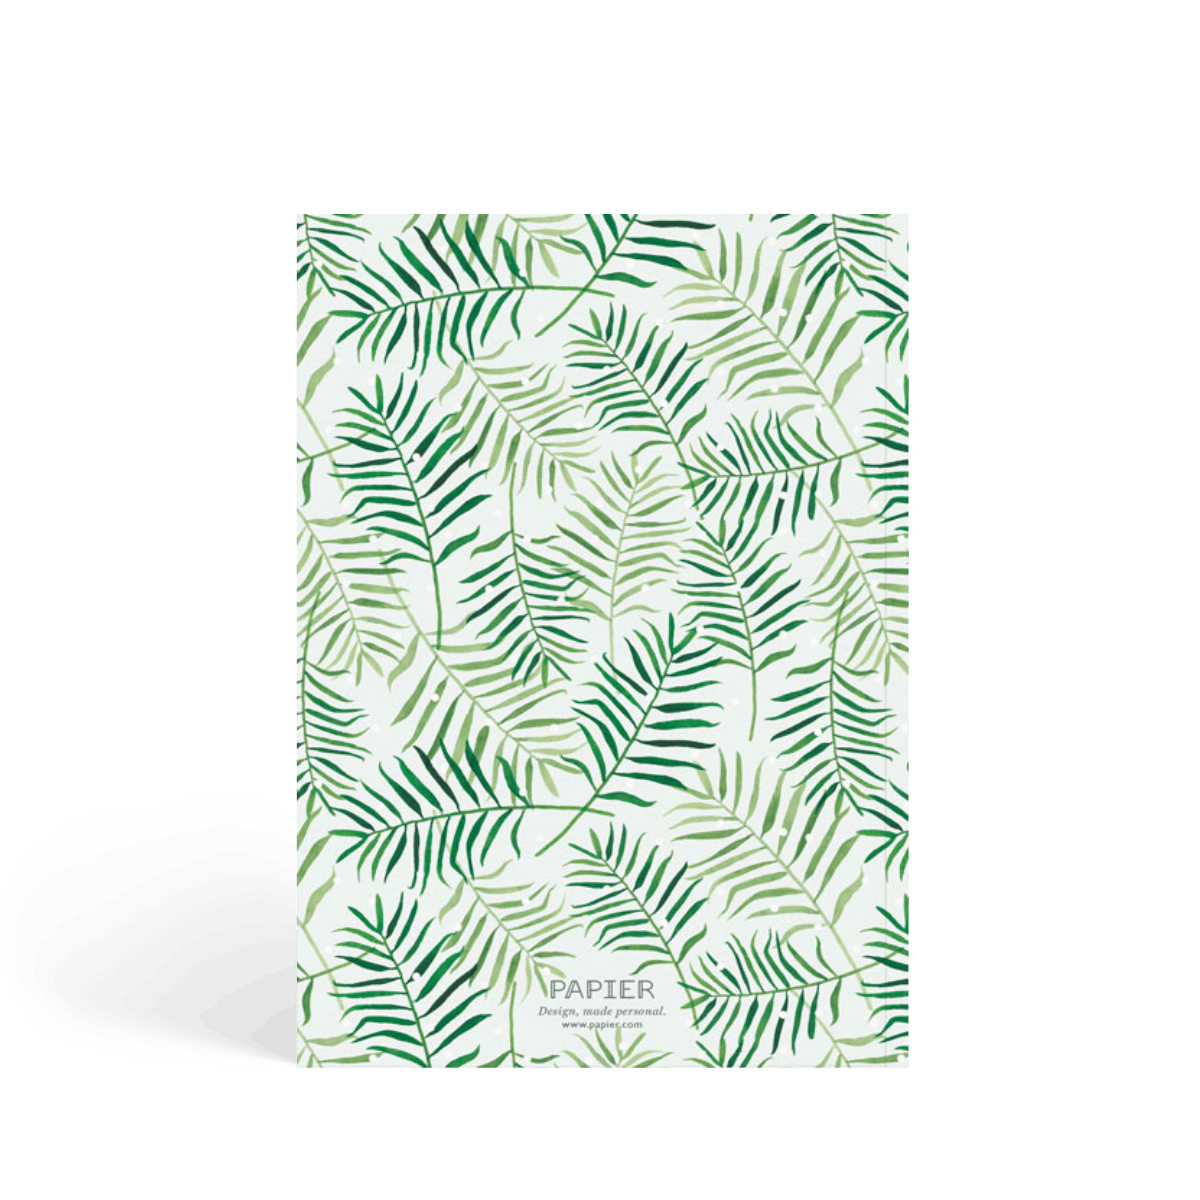 Https%3a%2f%2fwww.papier.com%2fproduct image%2f14264%2f5%2fpalm leaves 3810 arriere 1479902023.png?ixlib=rb 1.1